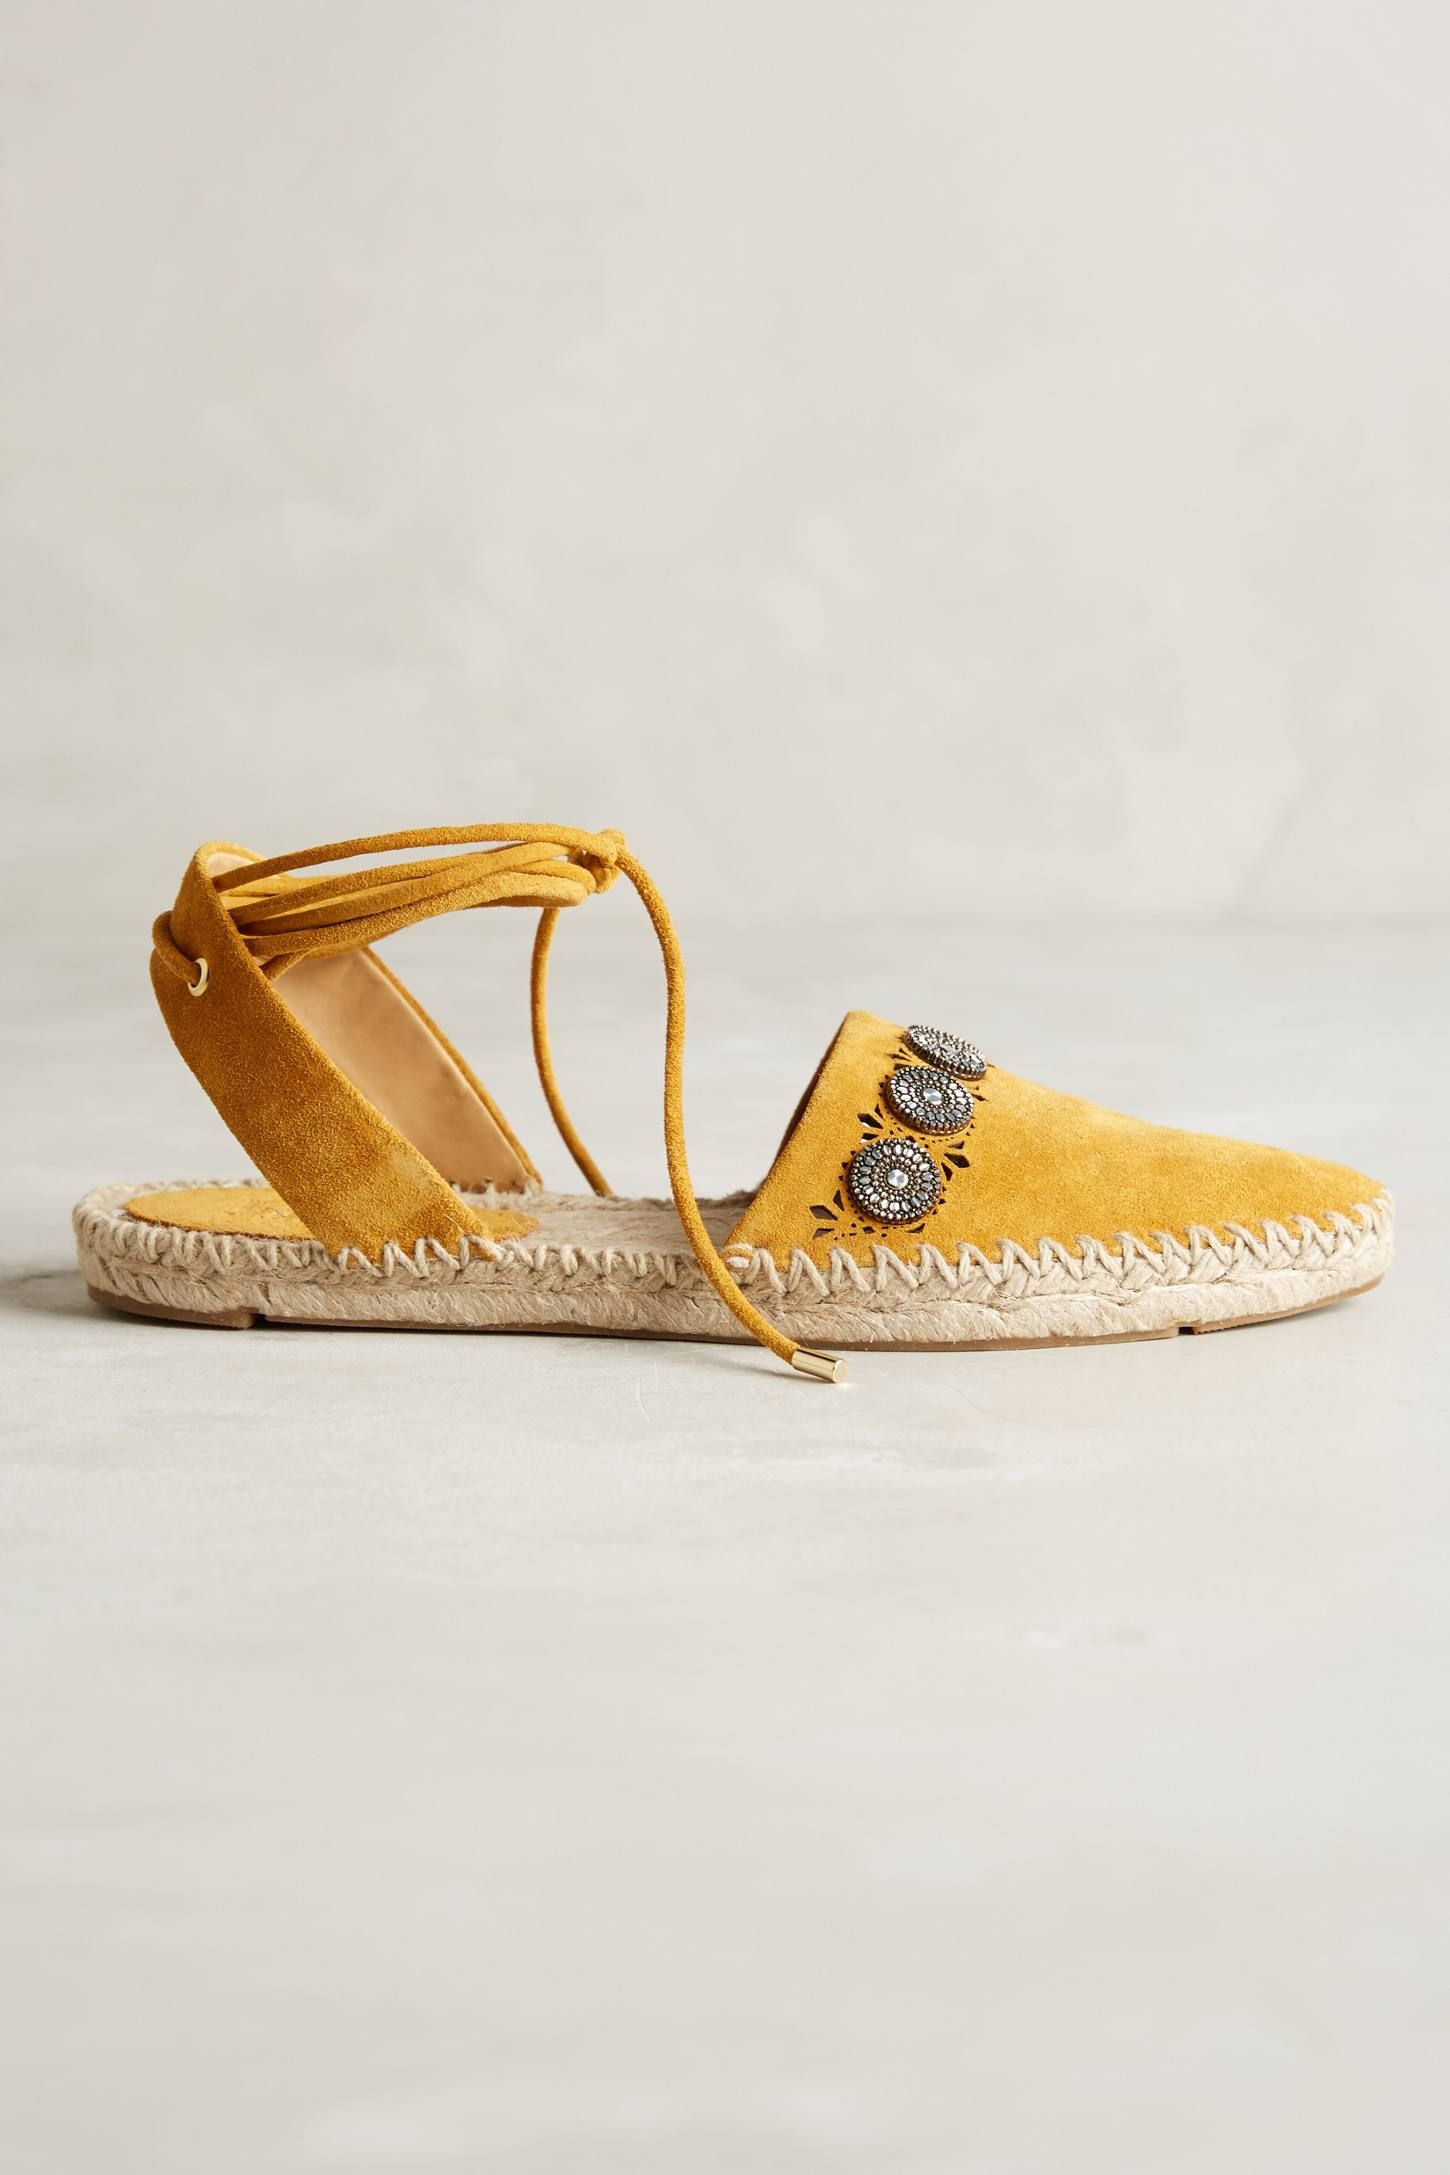 """<p>Belle by Sigerson Morrison Maia Espadrilles, $240; <a href=""""http://www.anthropologie.com/anthro/product/34545756.jsp?cm_vc=SEARCH_RESULTS#/"""">anthropologie.com</a></p>"""